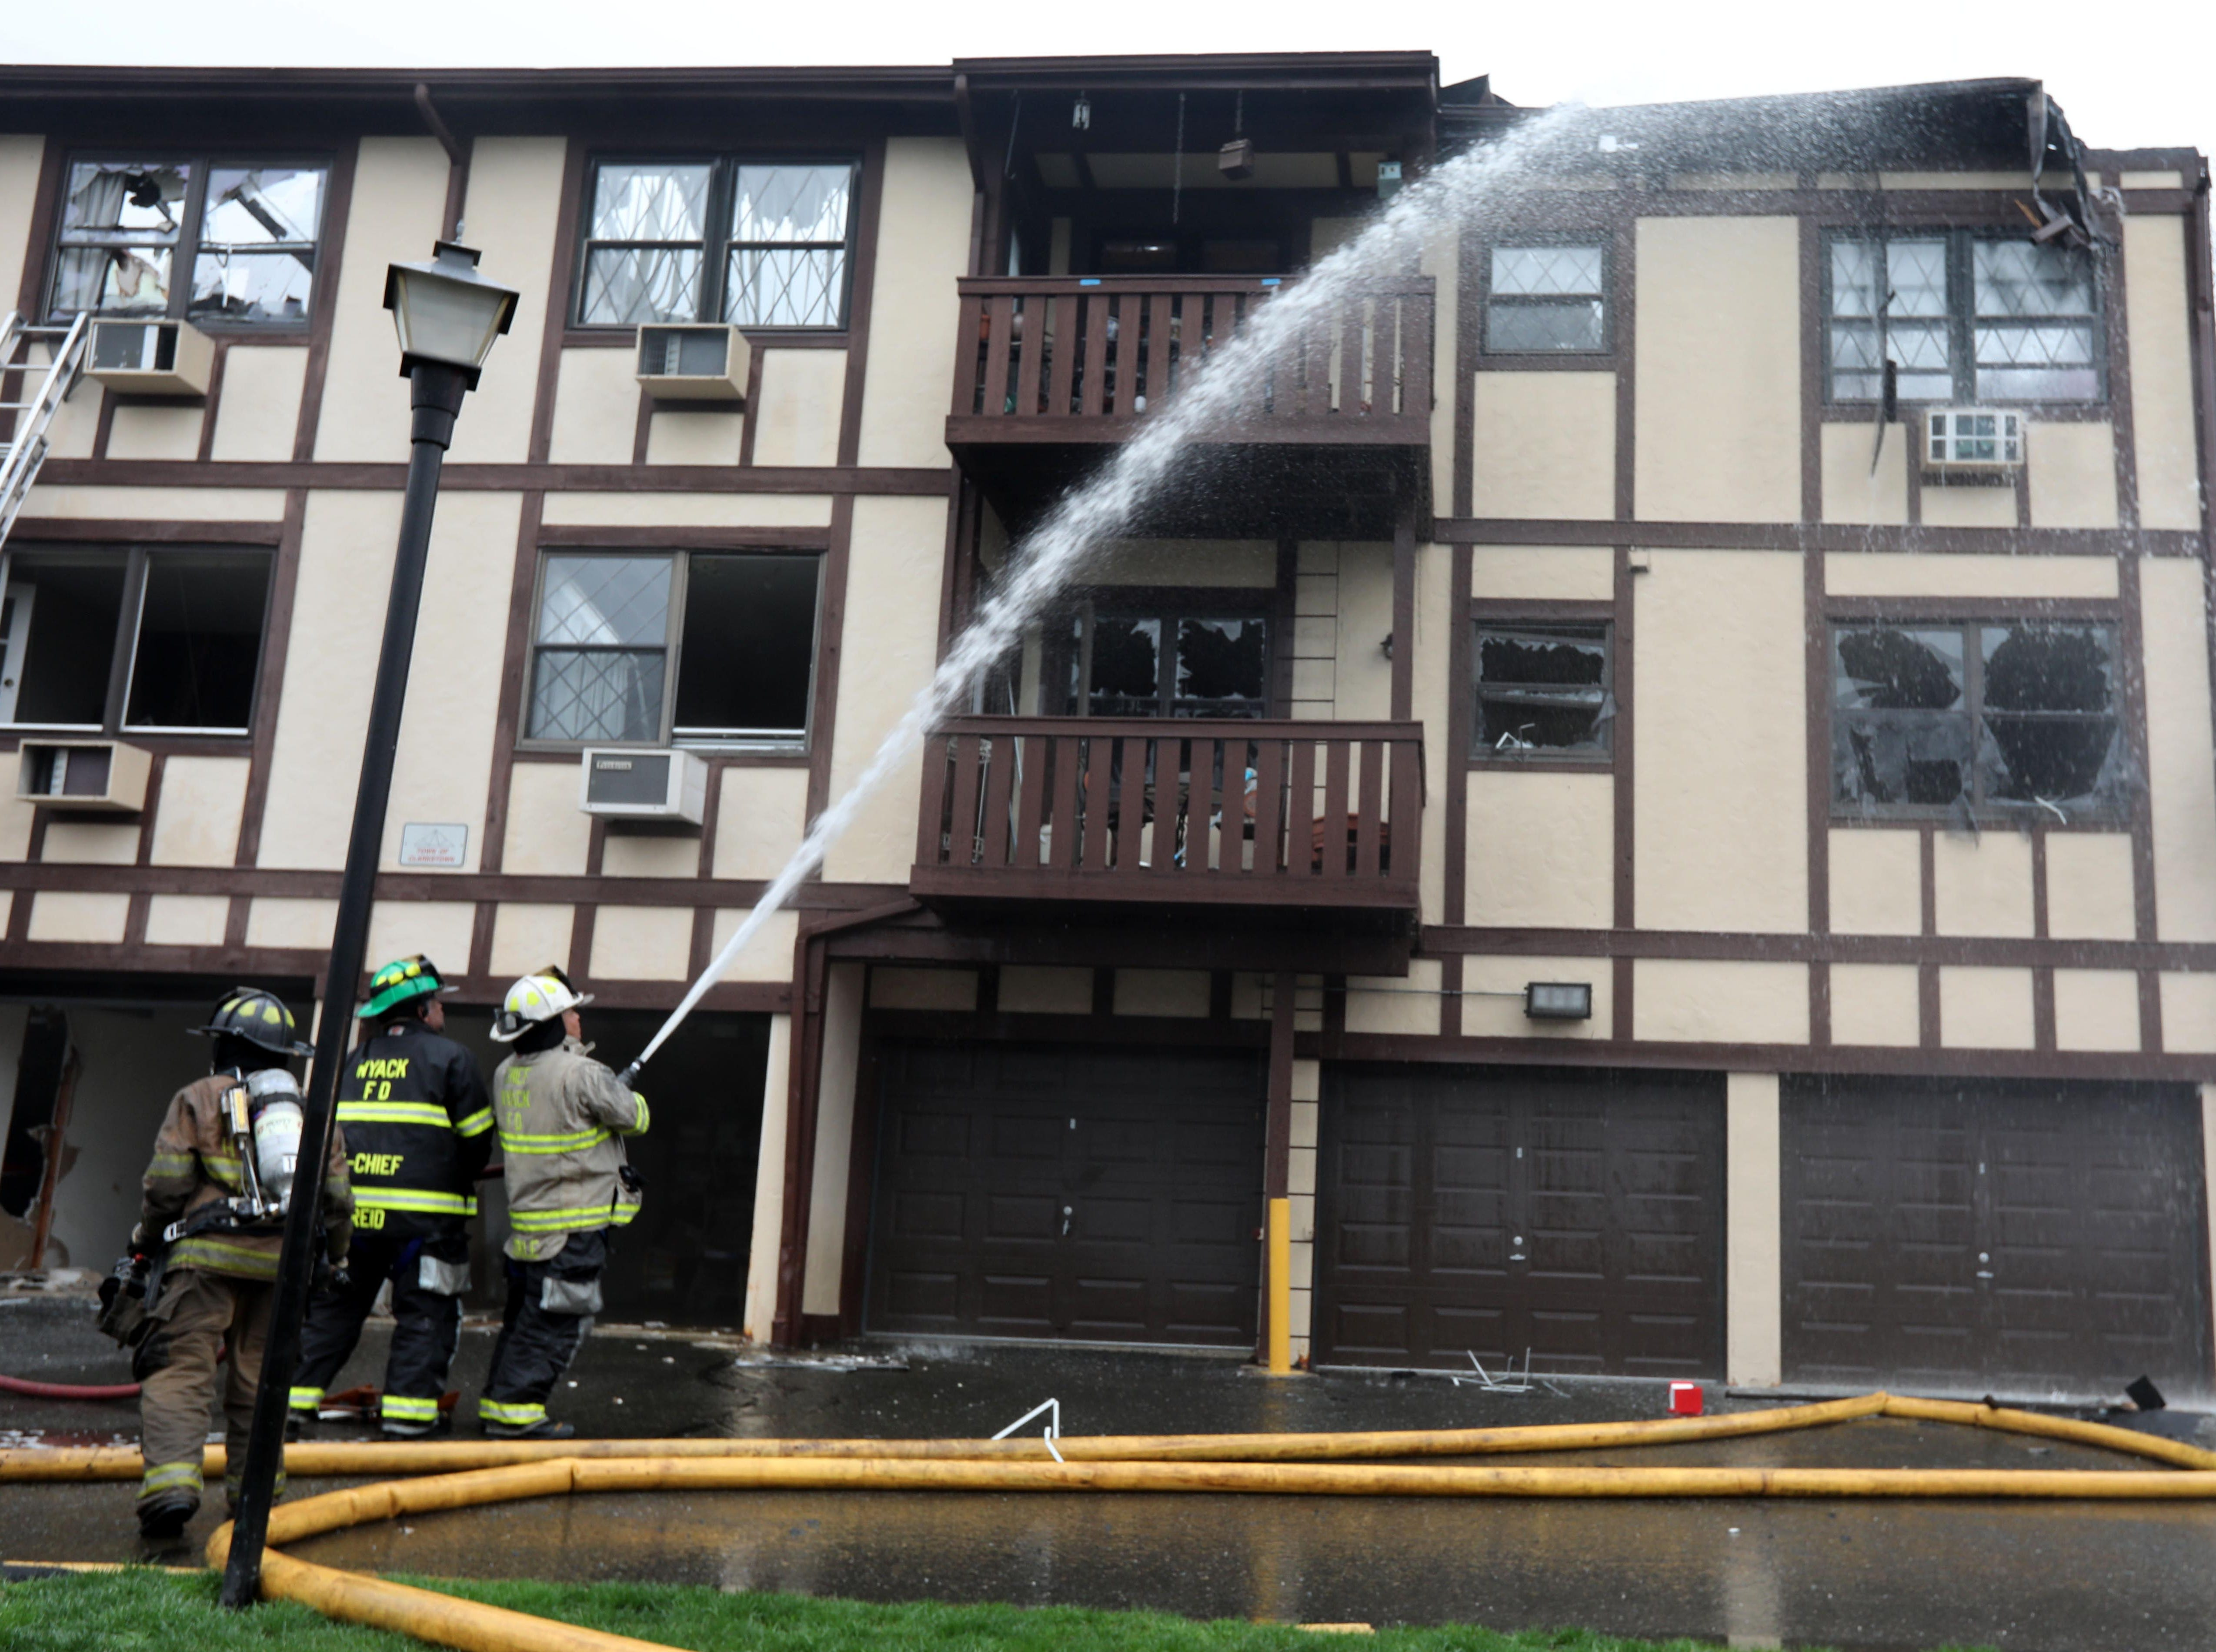 A fire Sunday afternoon destroyed multiple units of a condominium at Sierra Vista Lane in Valley Cottage April 14, 2019. Fire departments from Valley Cottage and surrounding communities responded to the fire.